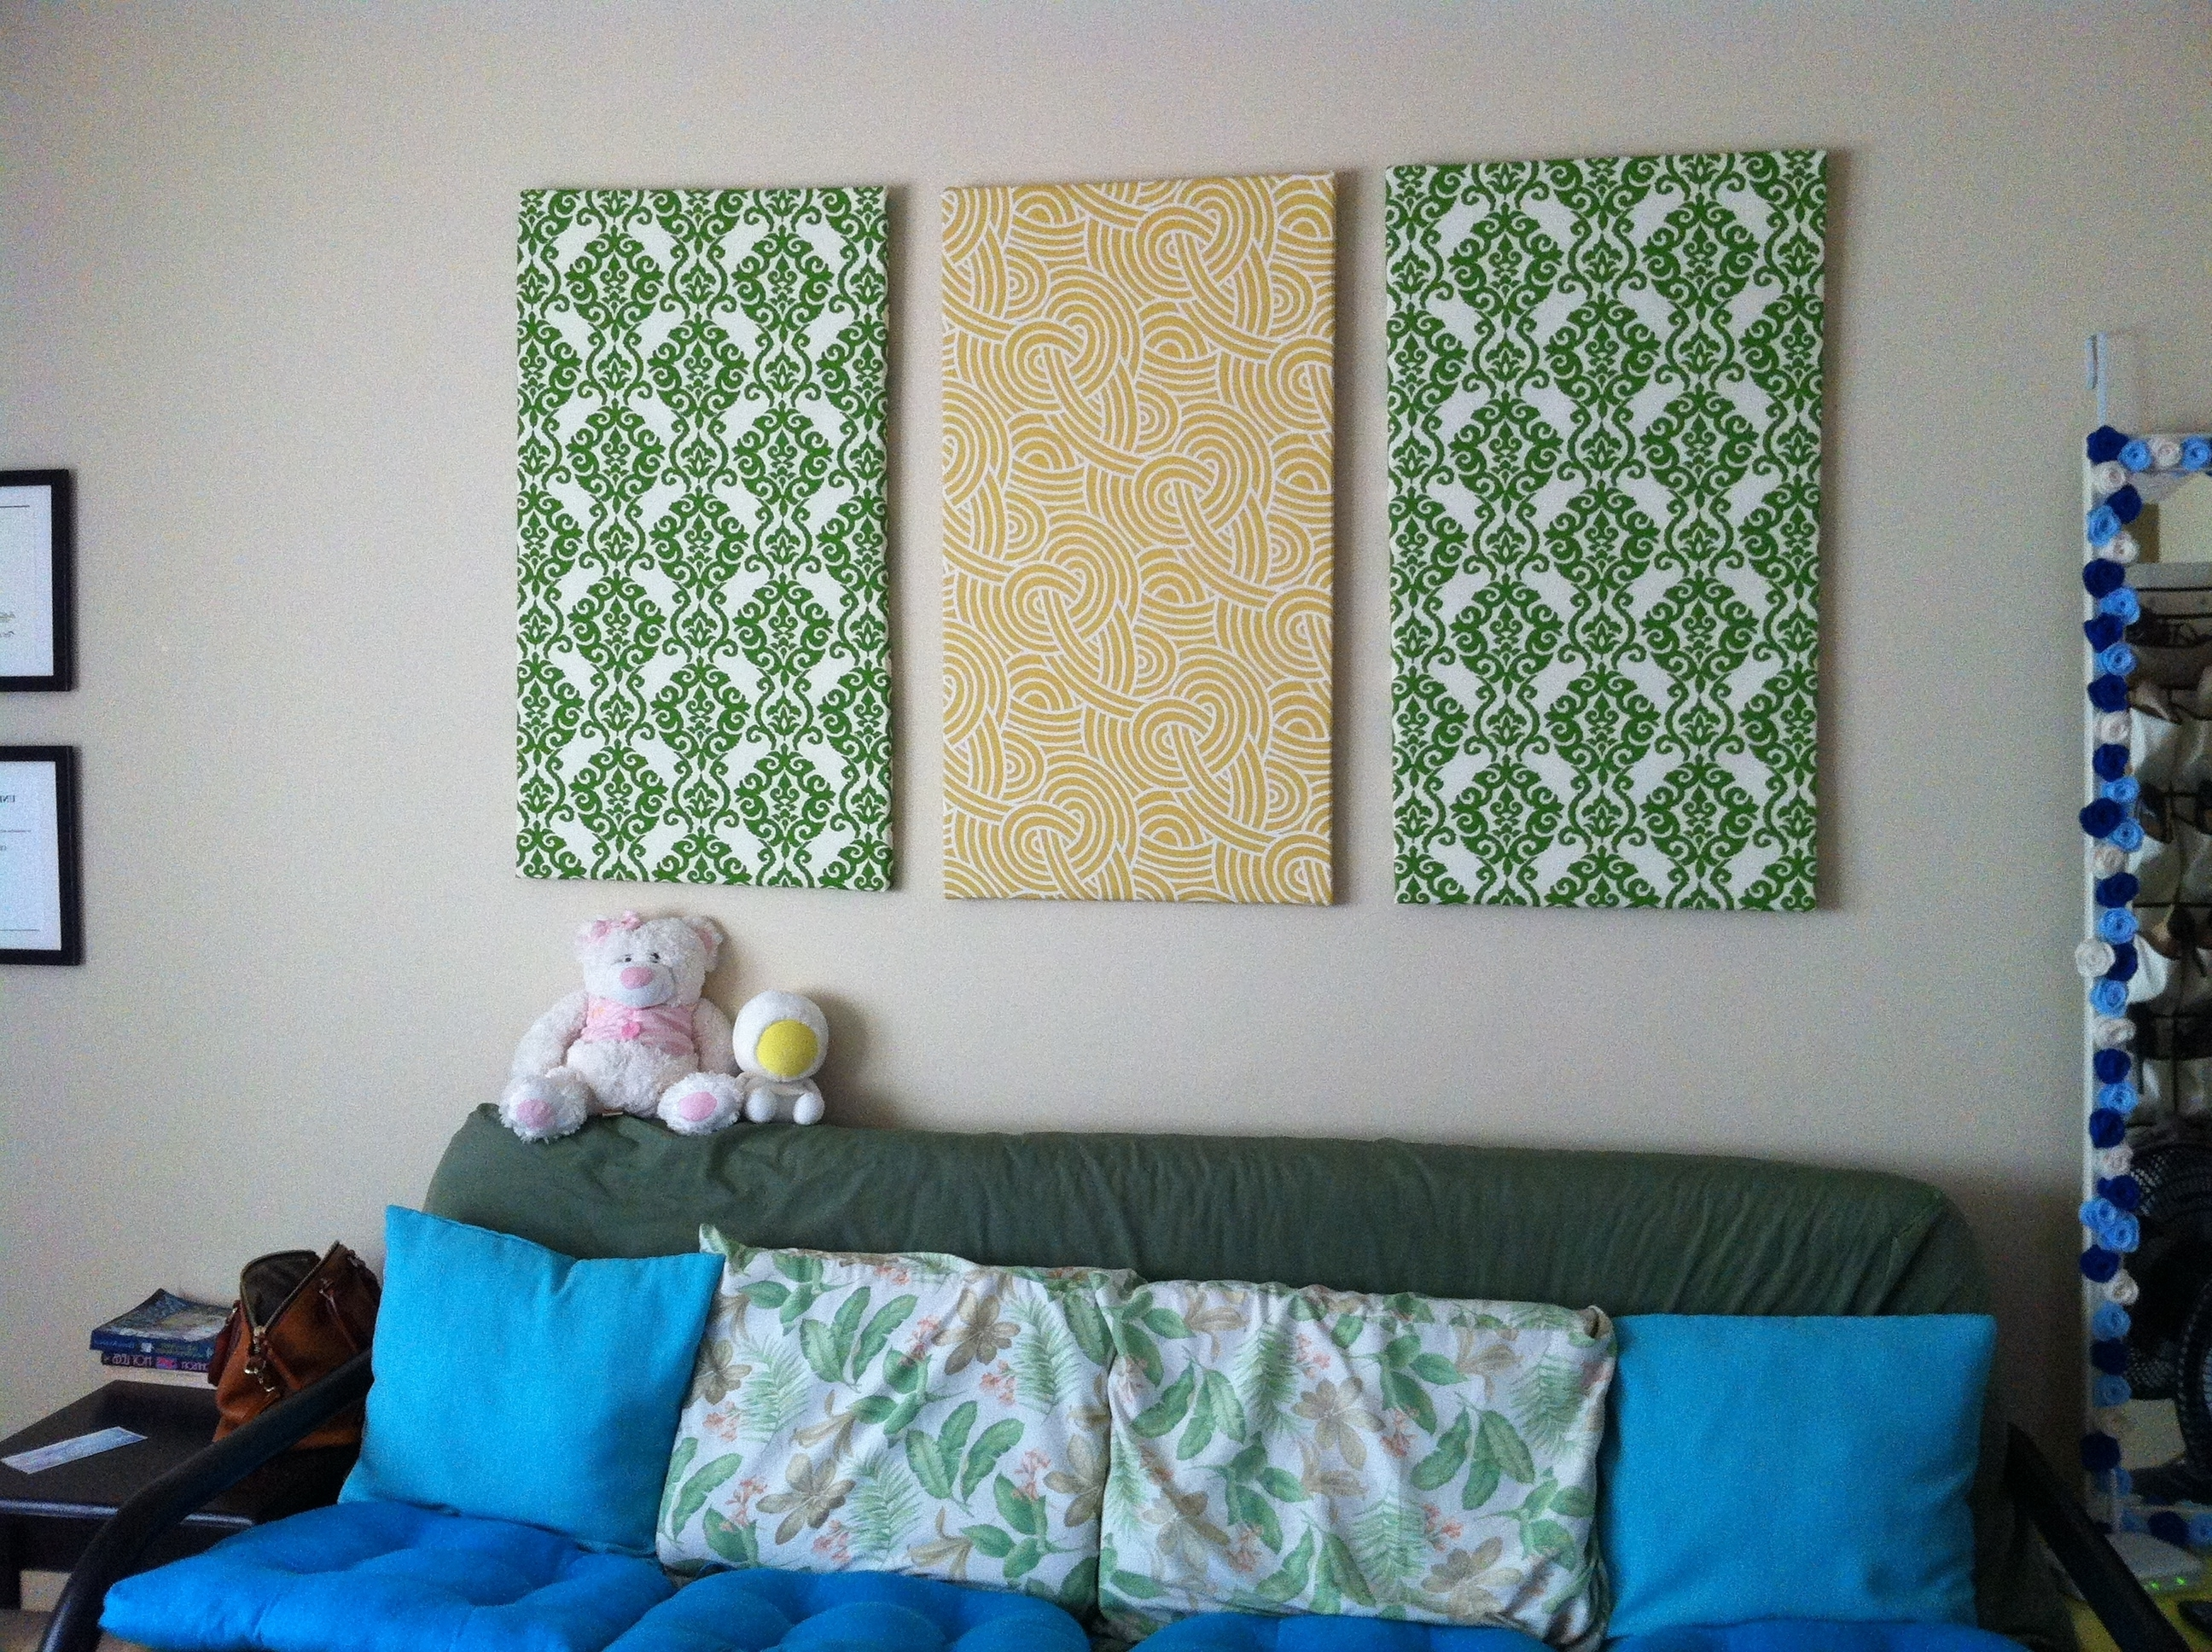 Bedroom Fabric Wall Art Inside 2018 Diy Bedroom Wall Art — The Home Redesign : Some Kind Diy Wall Art (View 3 of 15)